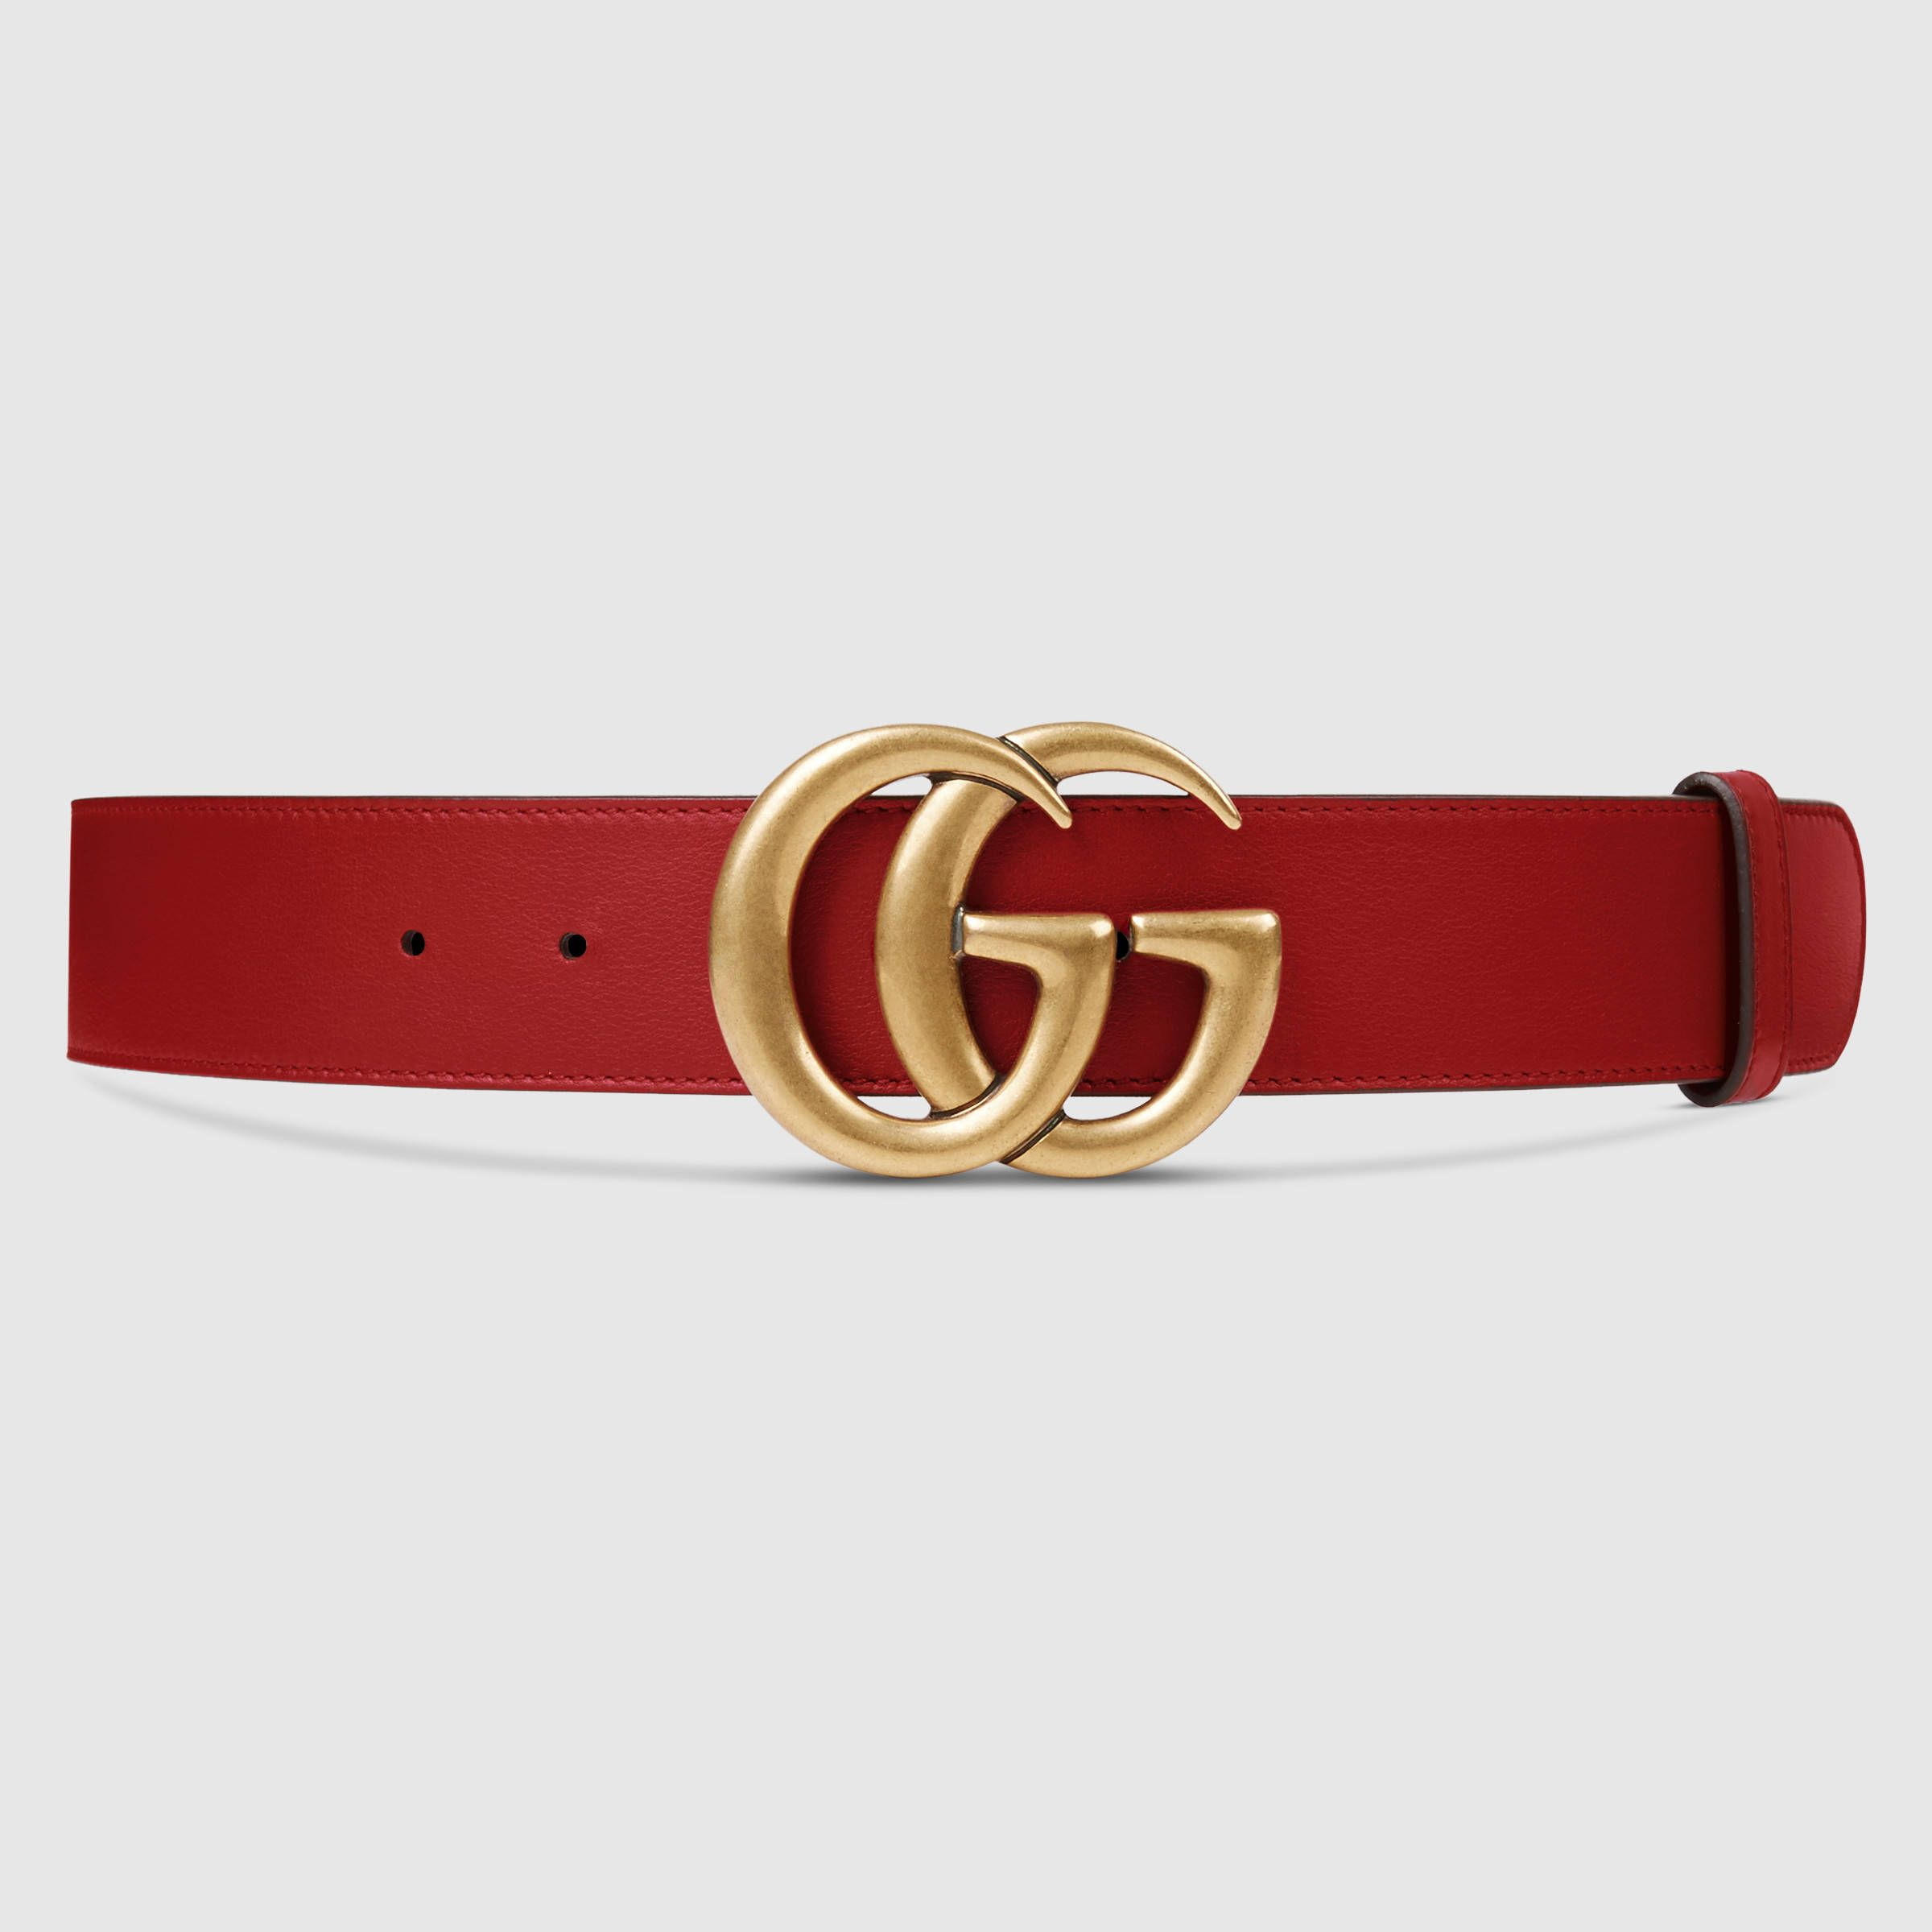 41e81a82e58 Gucci Men - Leather belt with double G buckle - 400593AP00T6339